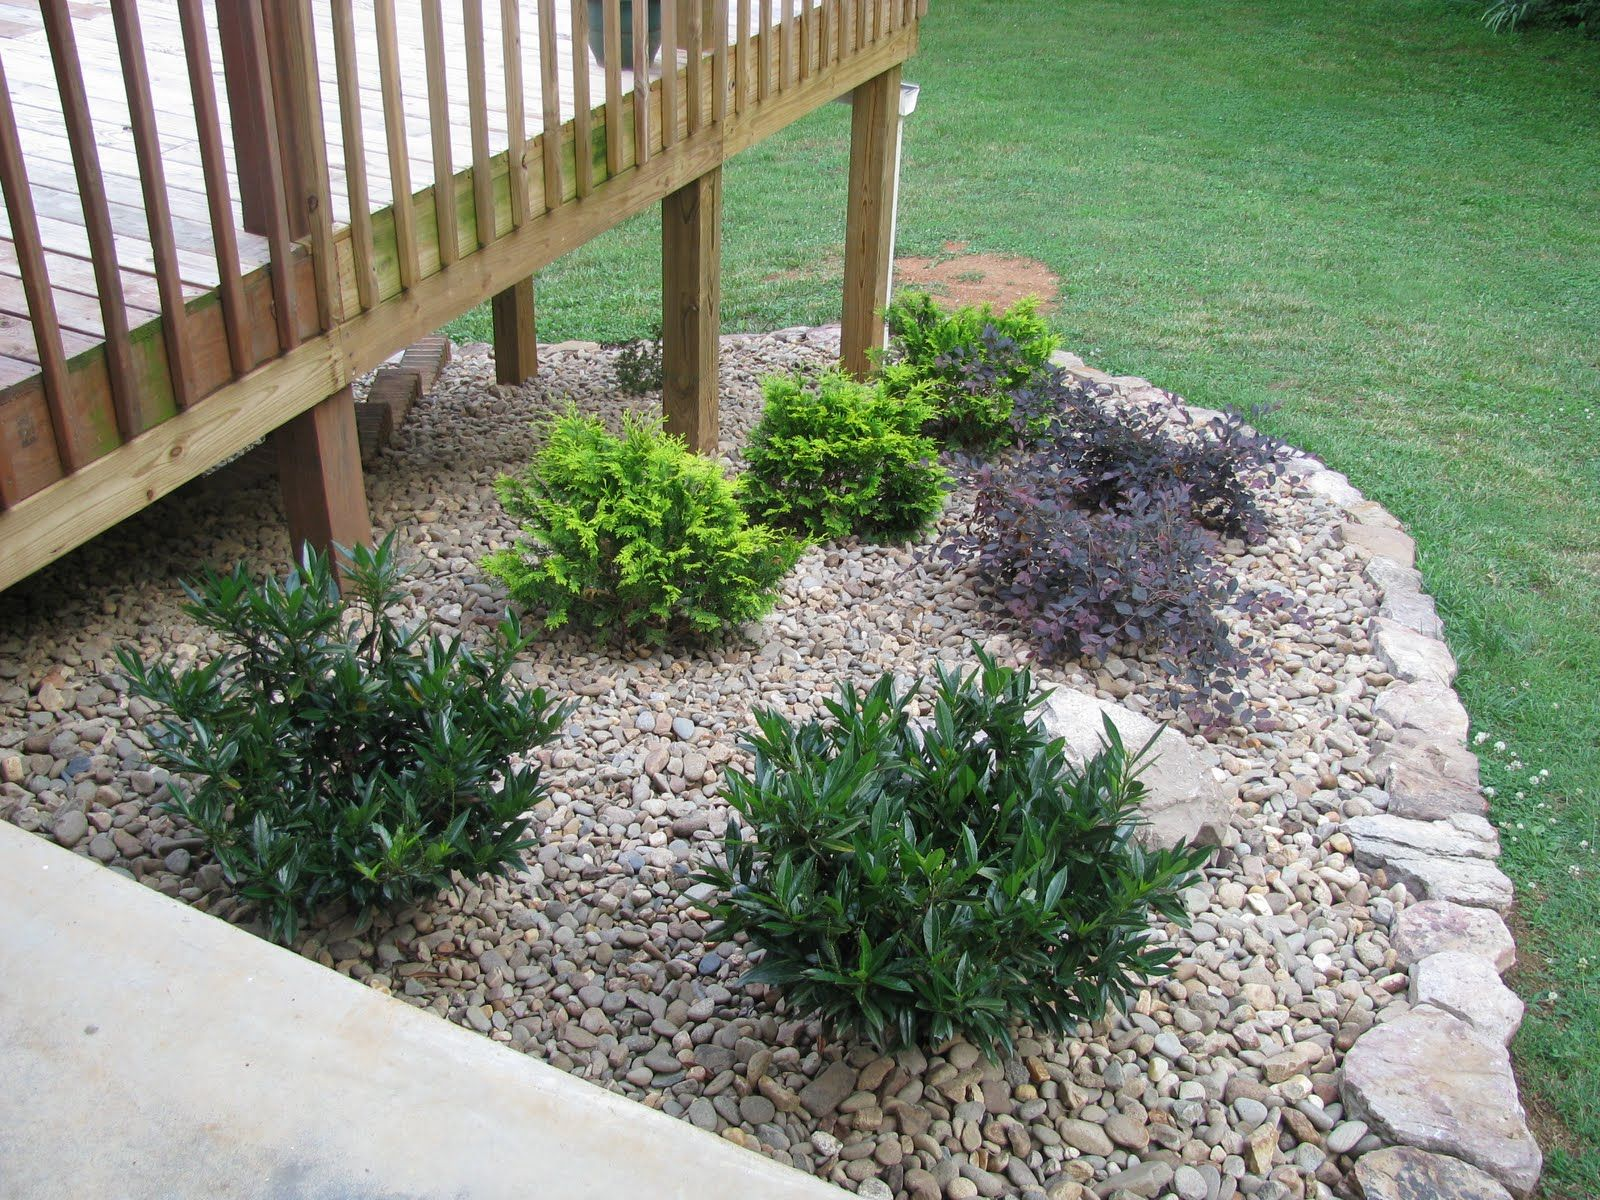 Landscaping around a deck lightsonthelake rock garden for Garden decking ideas pinterest